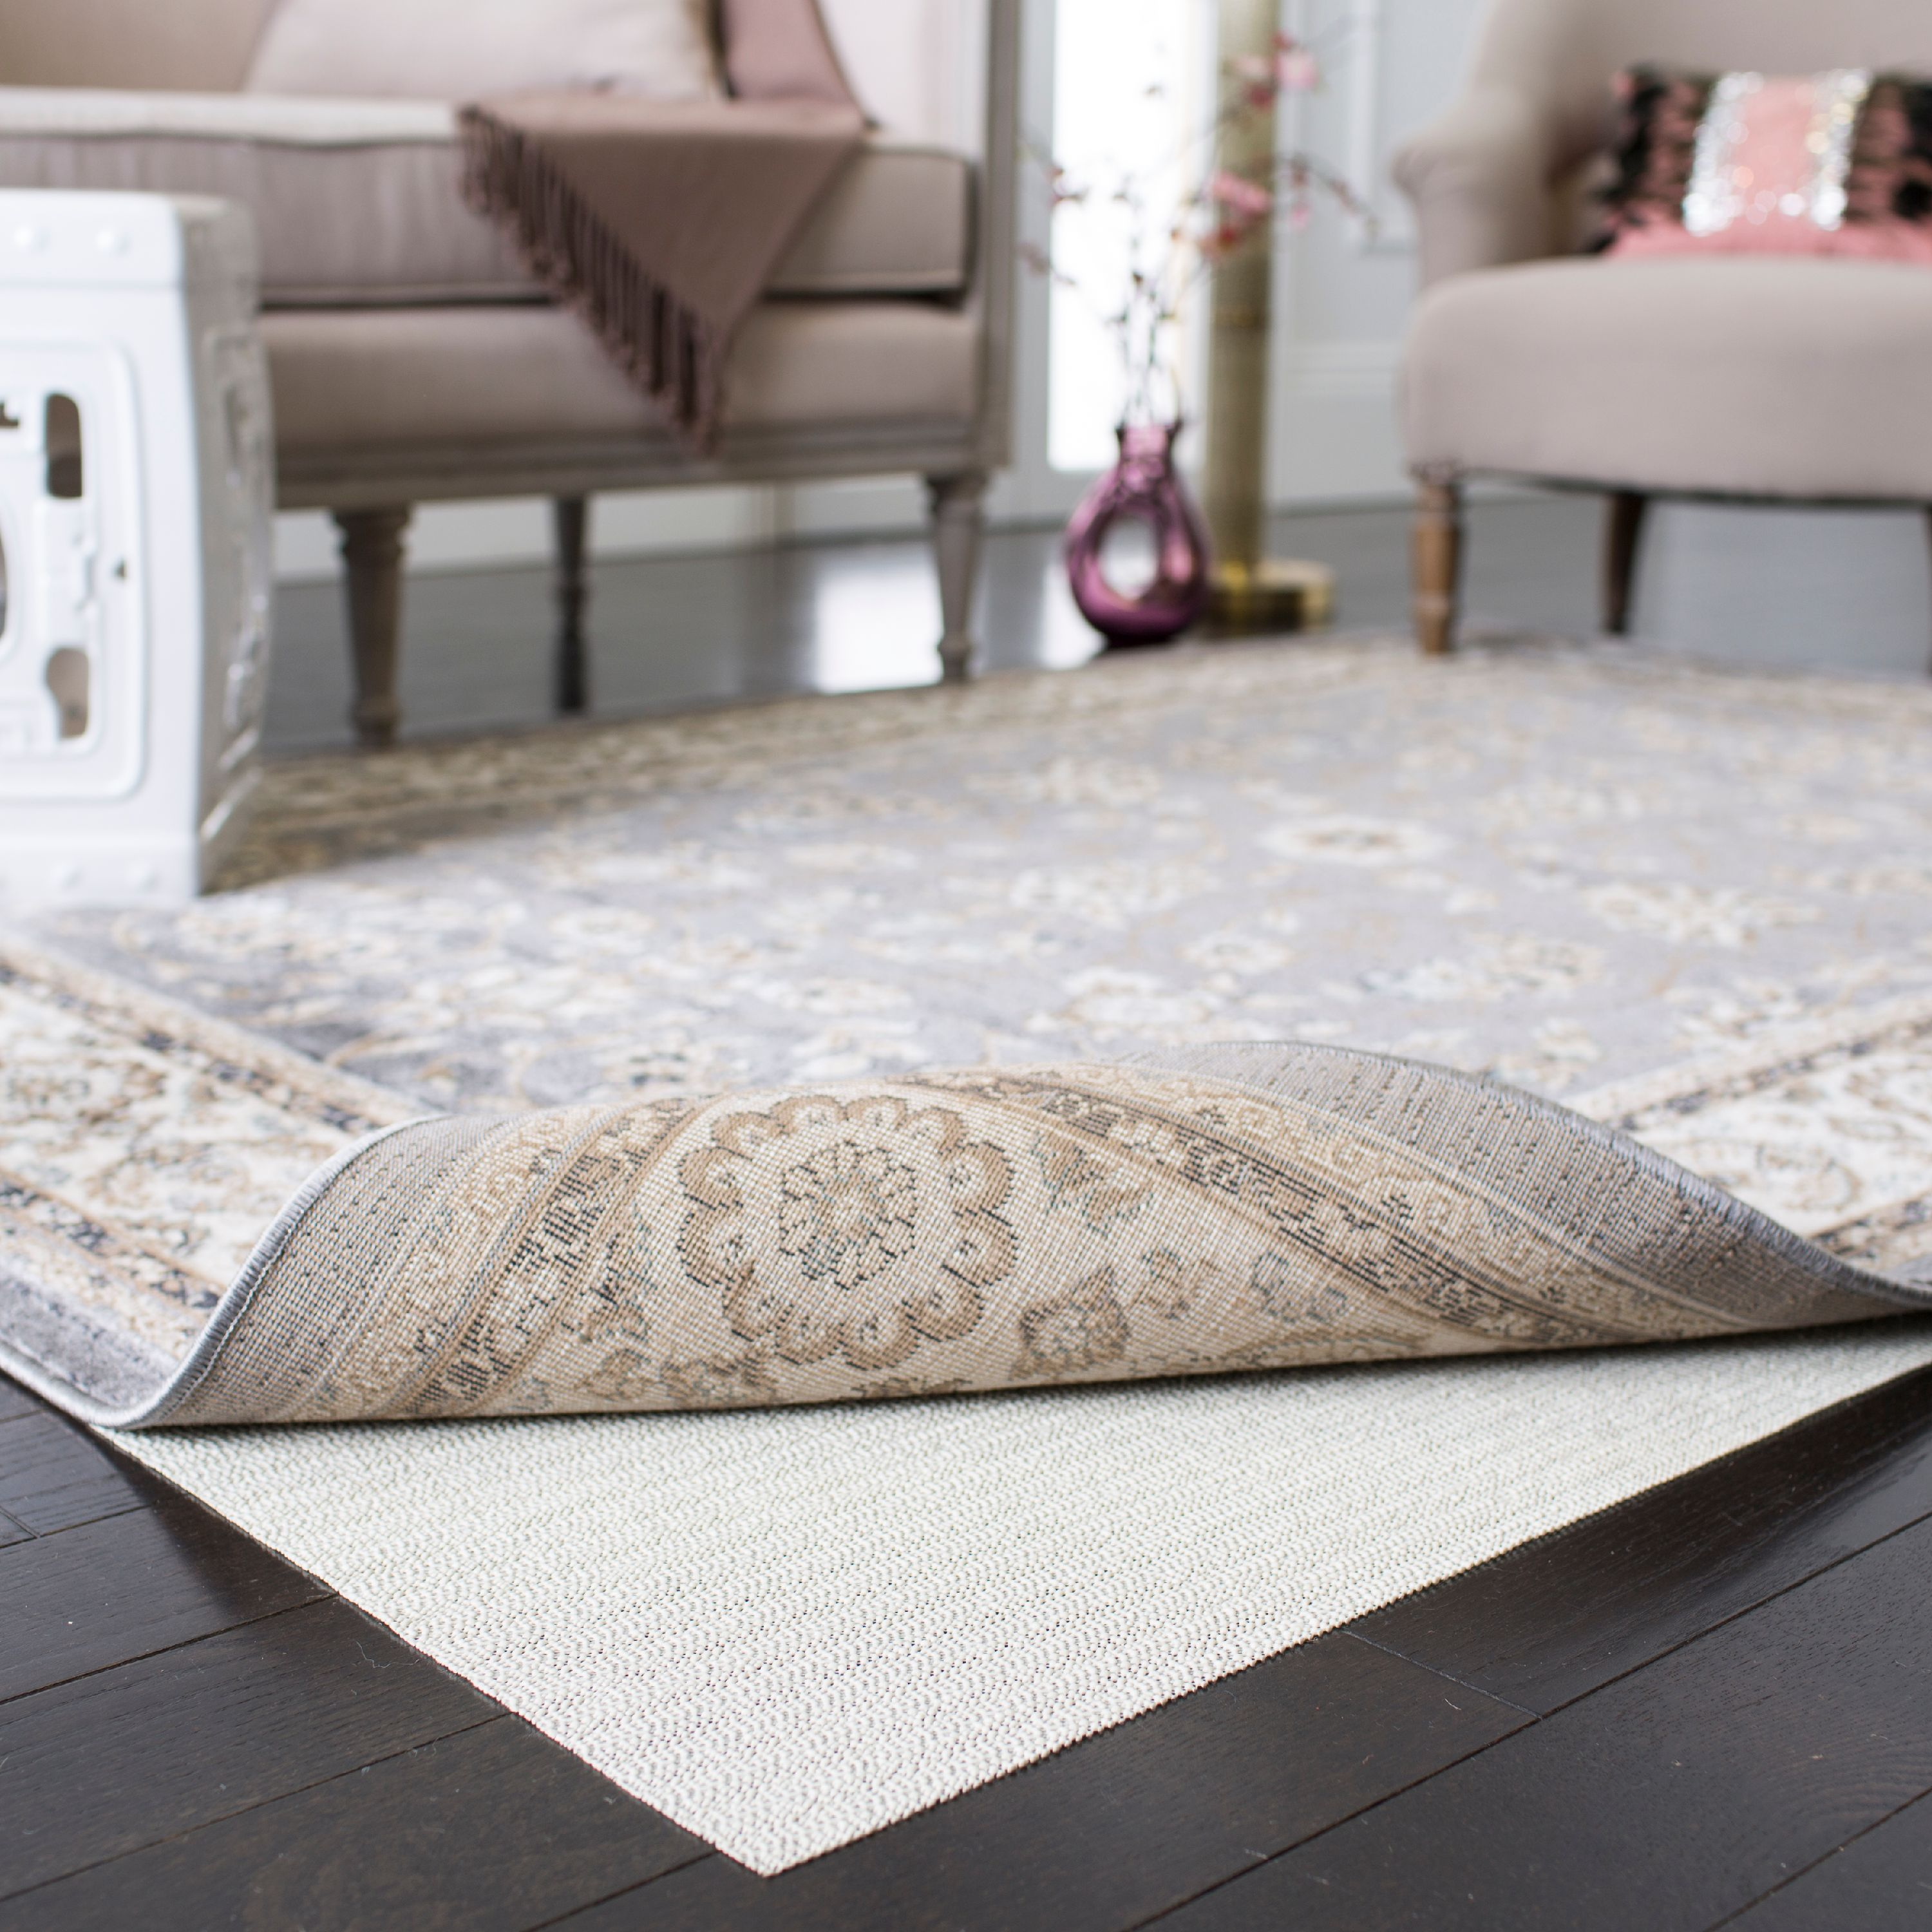 Safavieh Deluxe Ultra Rug Pad for Hardwood Floor